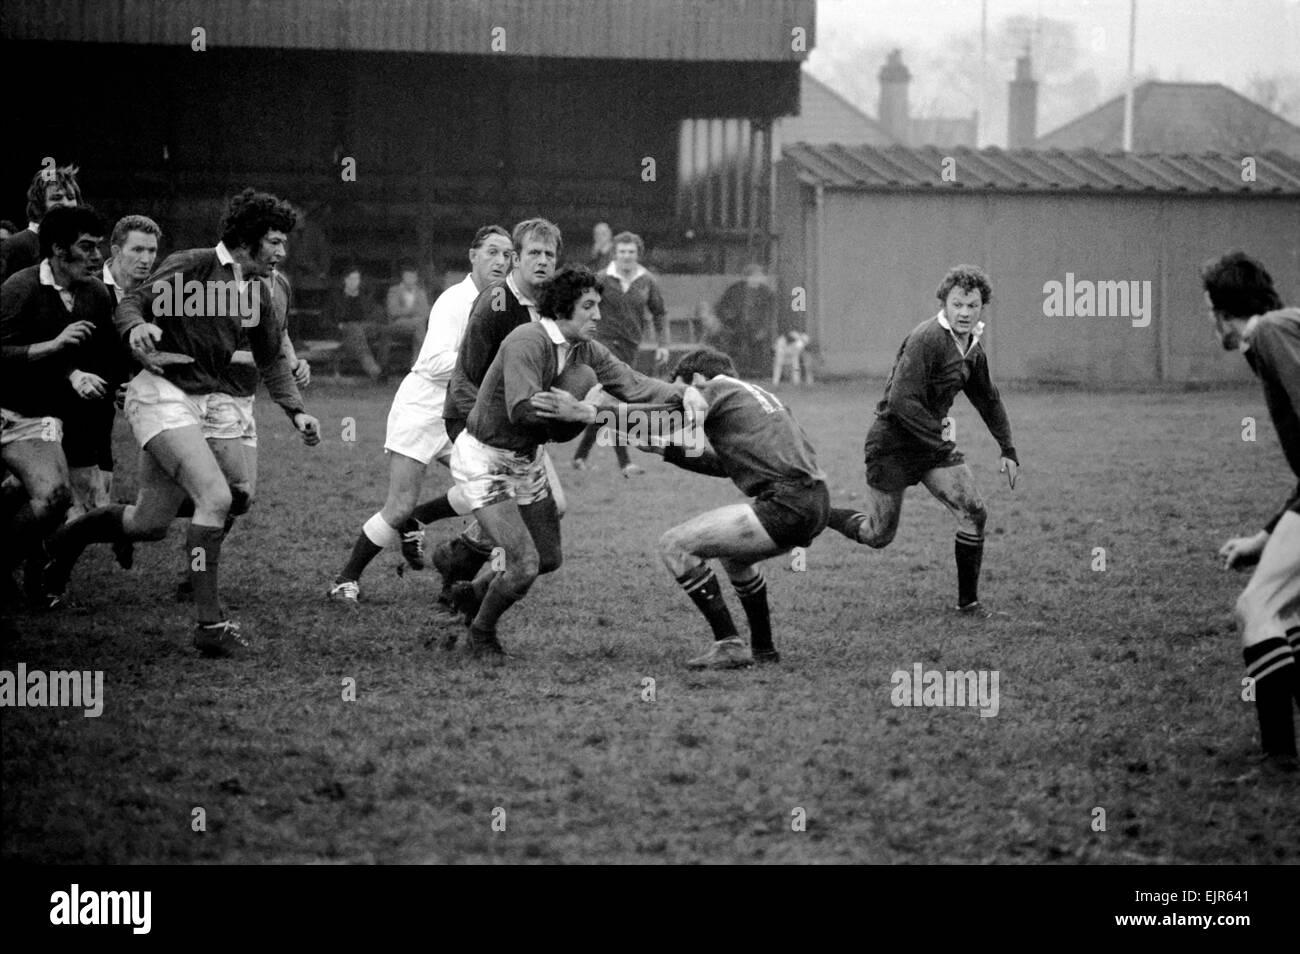 Sport: Rugby Union. Llanelli v. Wasps. Bennett of Llanelli in possession of the ball looks determined to come out - Stock Image